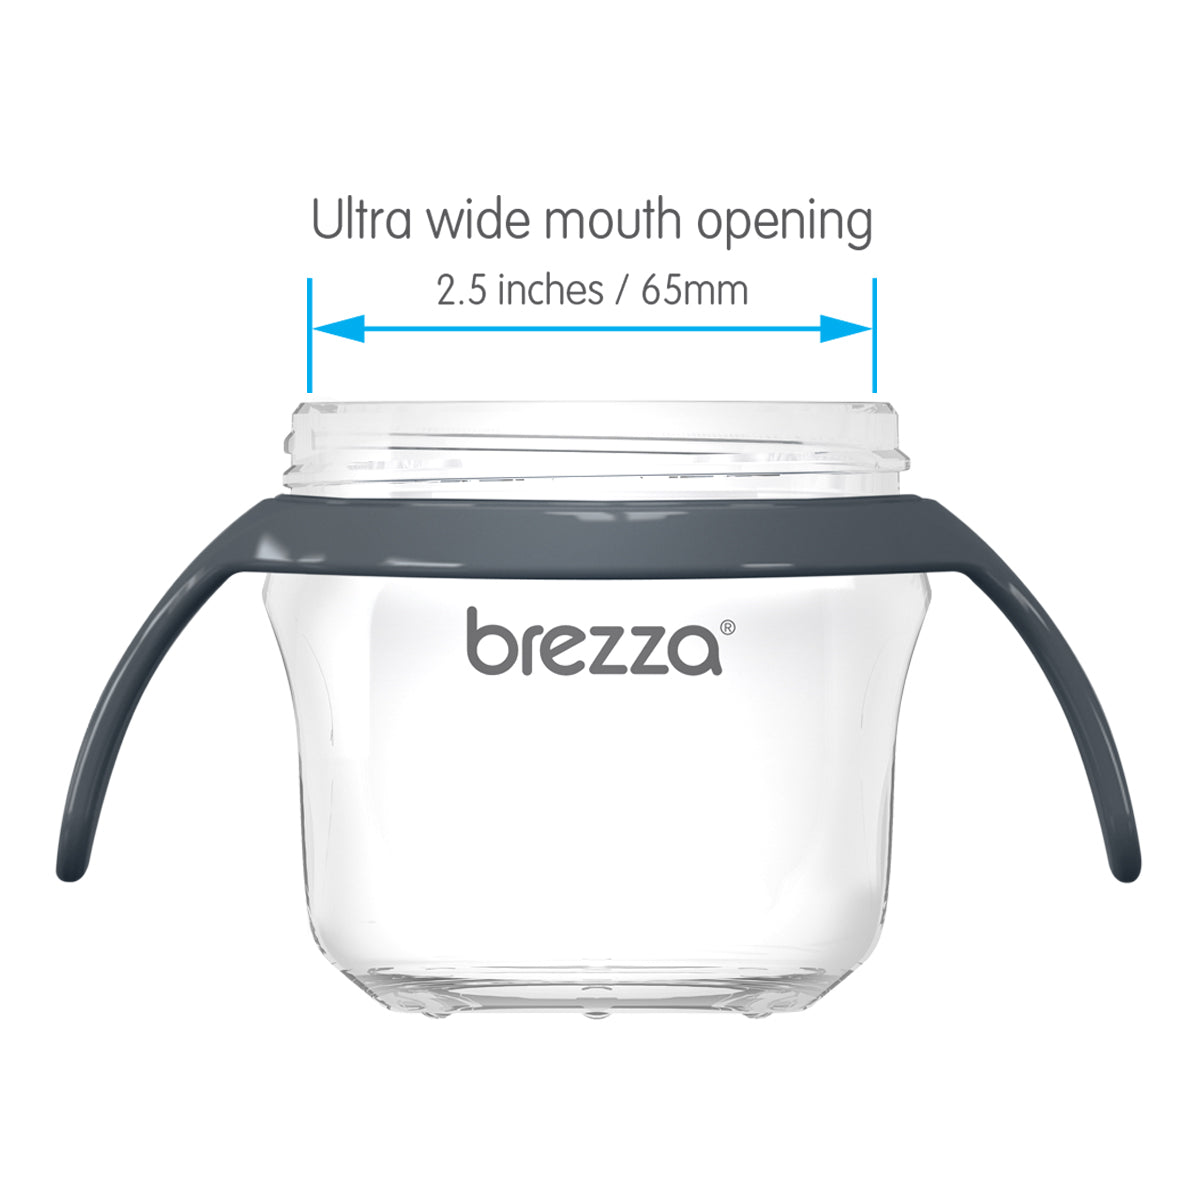 Easier to clean with ultra wide mouth